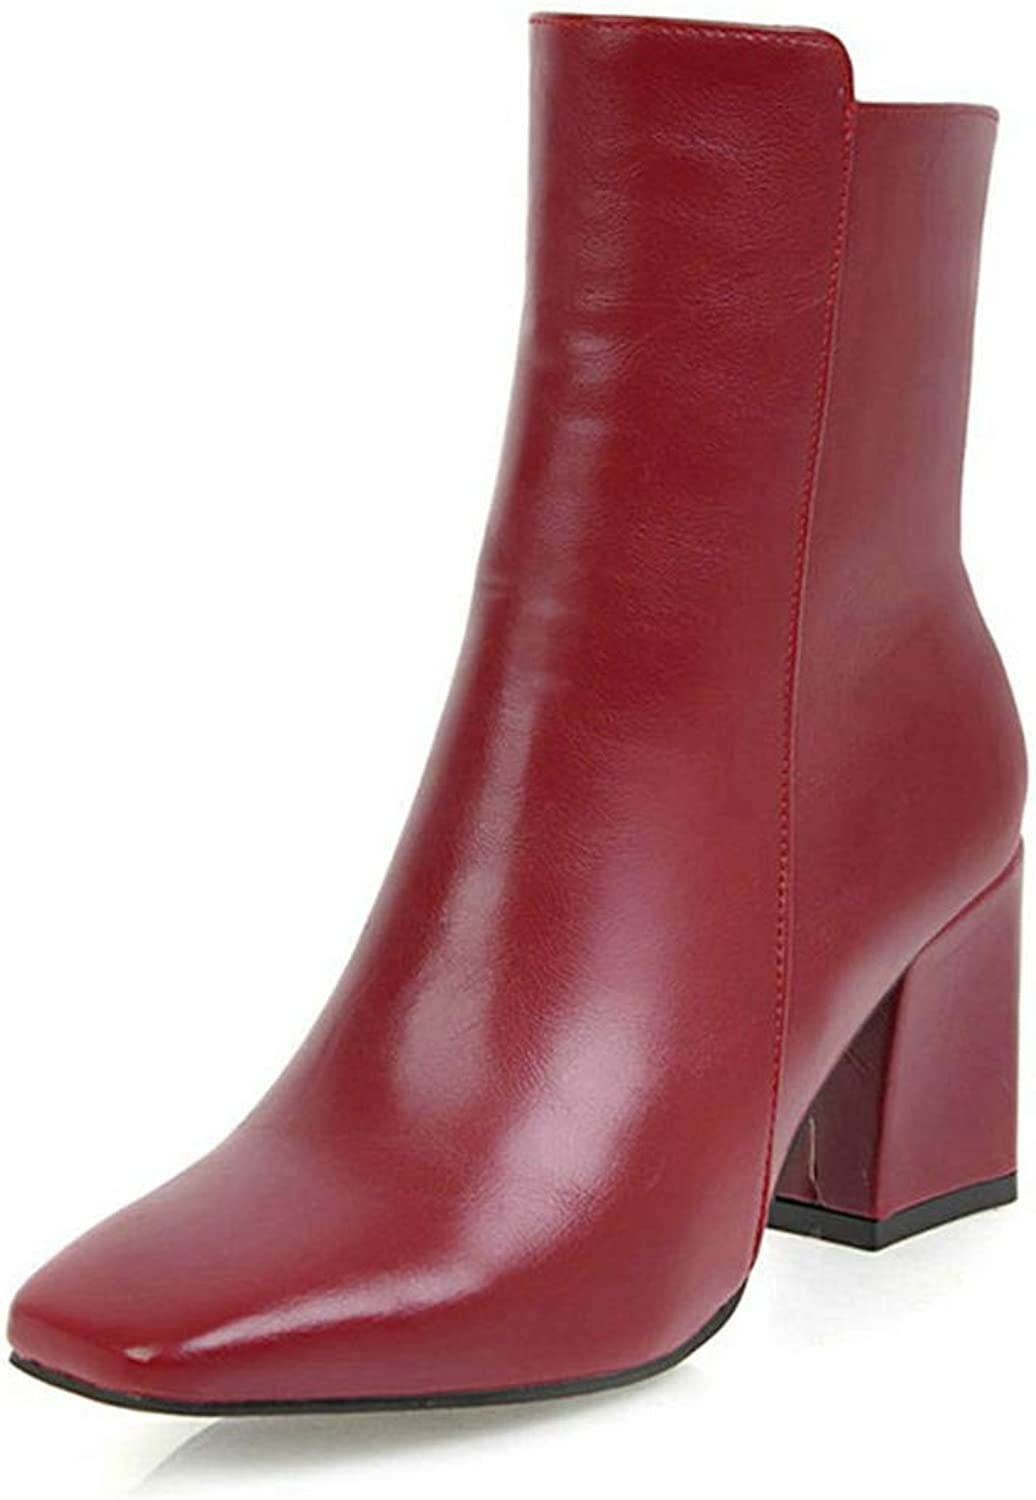 Kyle Walsh Pa Women Side Zipper Comfortable Square Heel Ankle Winter Black Red White Boots